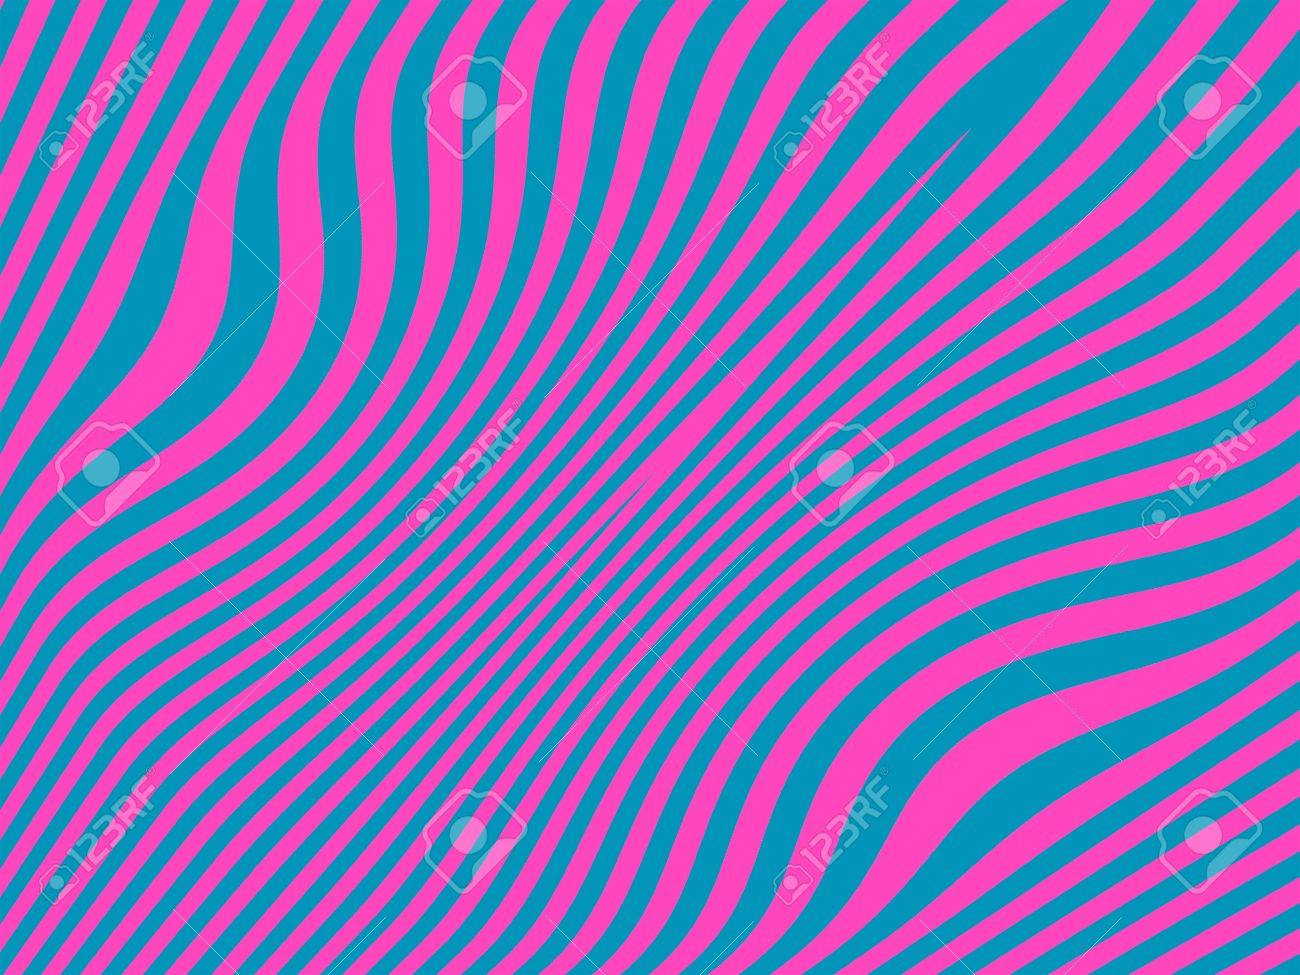 Psychodelic zebra pattern in pink and blue contrast Stock Photo - 13525235